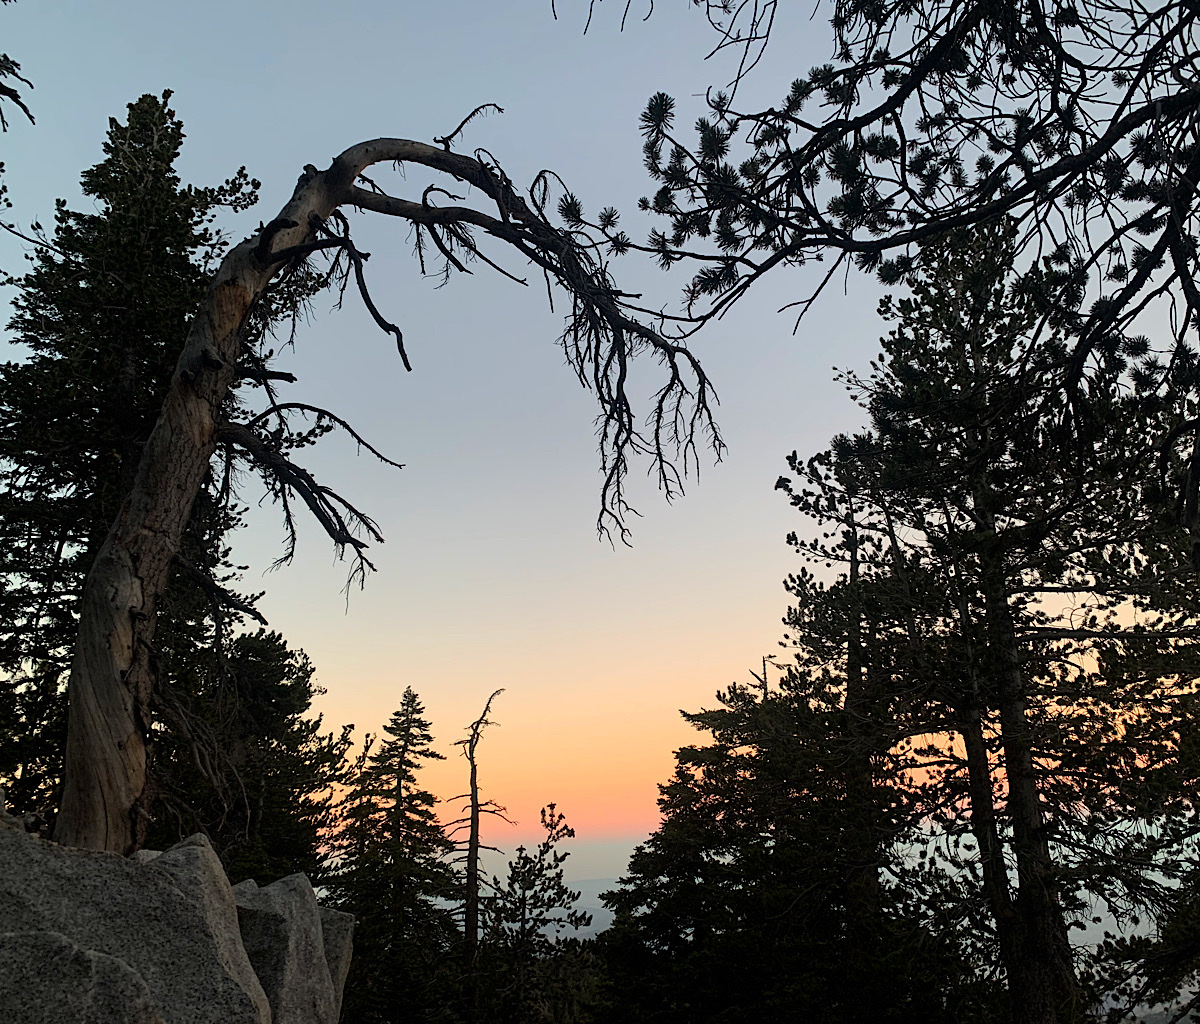 Spooky trees at the cowgirl campsite on the flanks of San Jacinto Peak.